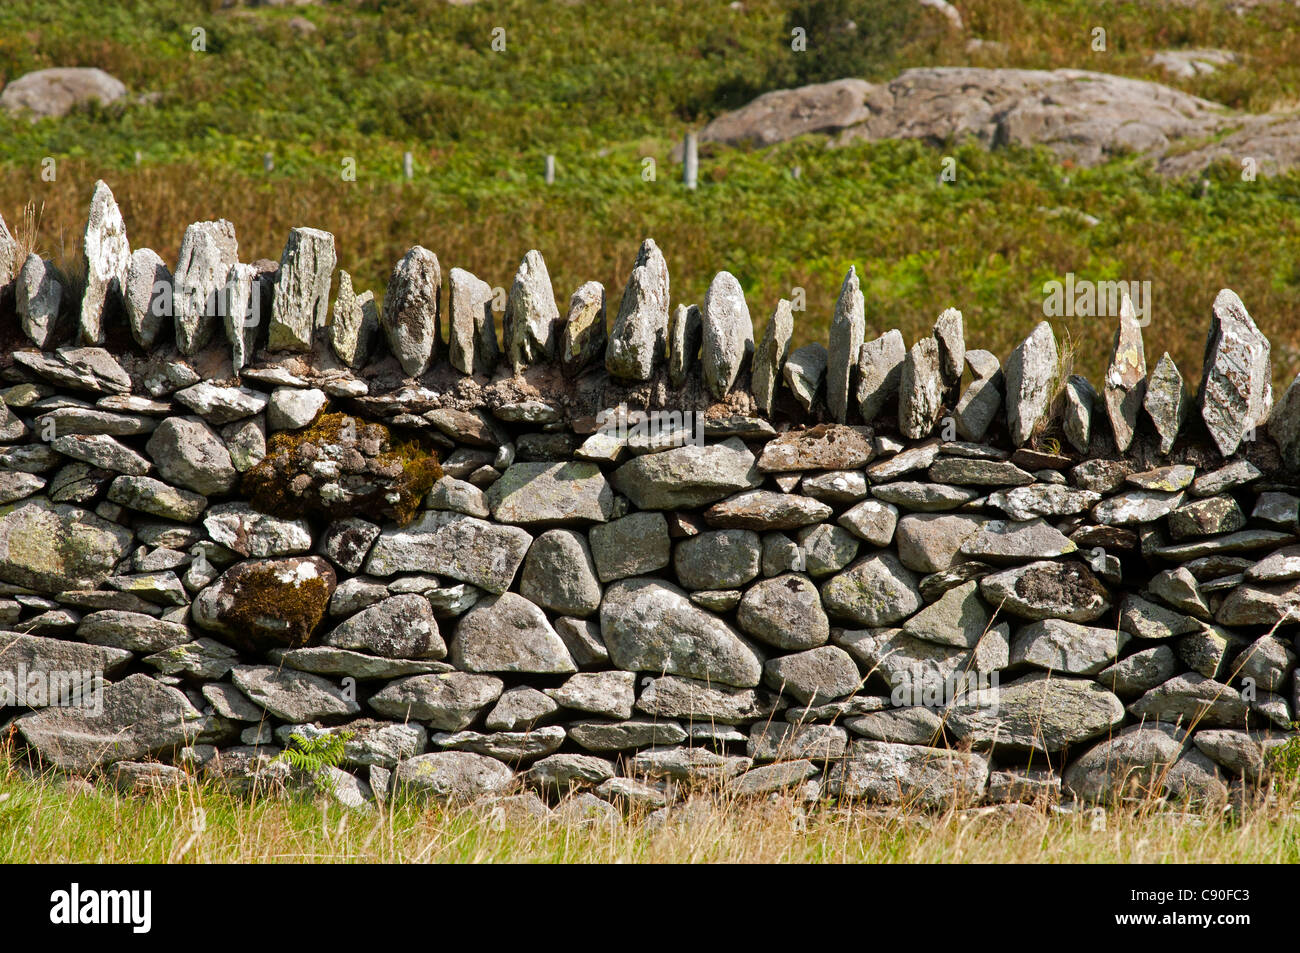 Stone wall of St. Celynin's church above Rowen, Snowdonia National Park, Wales, UK - Stock Image